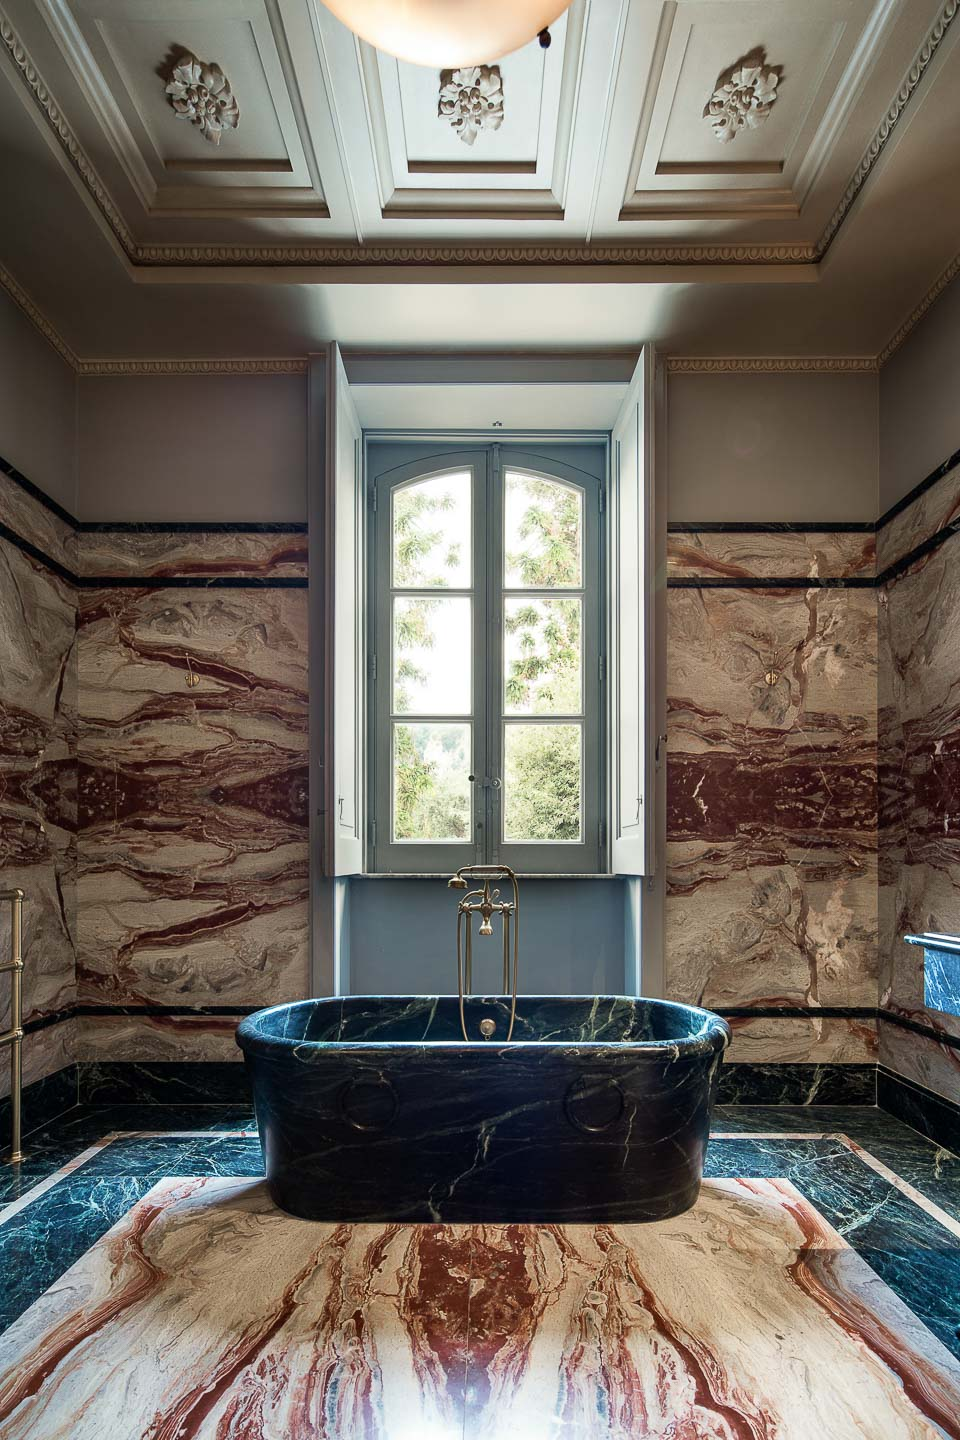 Villa Astor exquisite luxury marble collection best interior design interiordecorator Jacques Garcia French chic arte de vivre The Heritage Collection